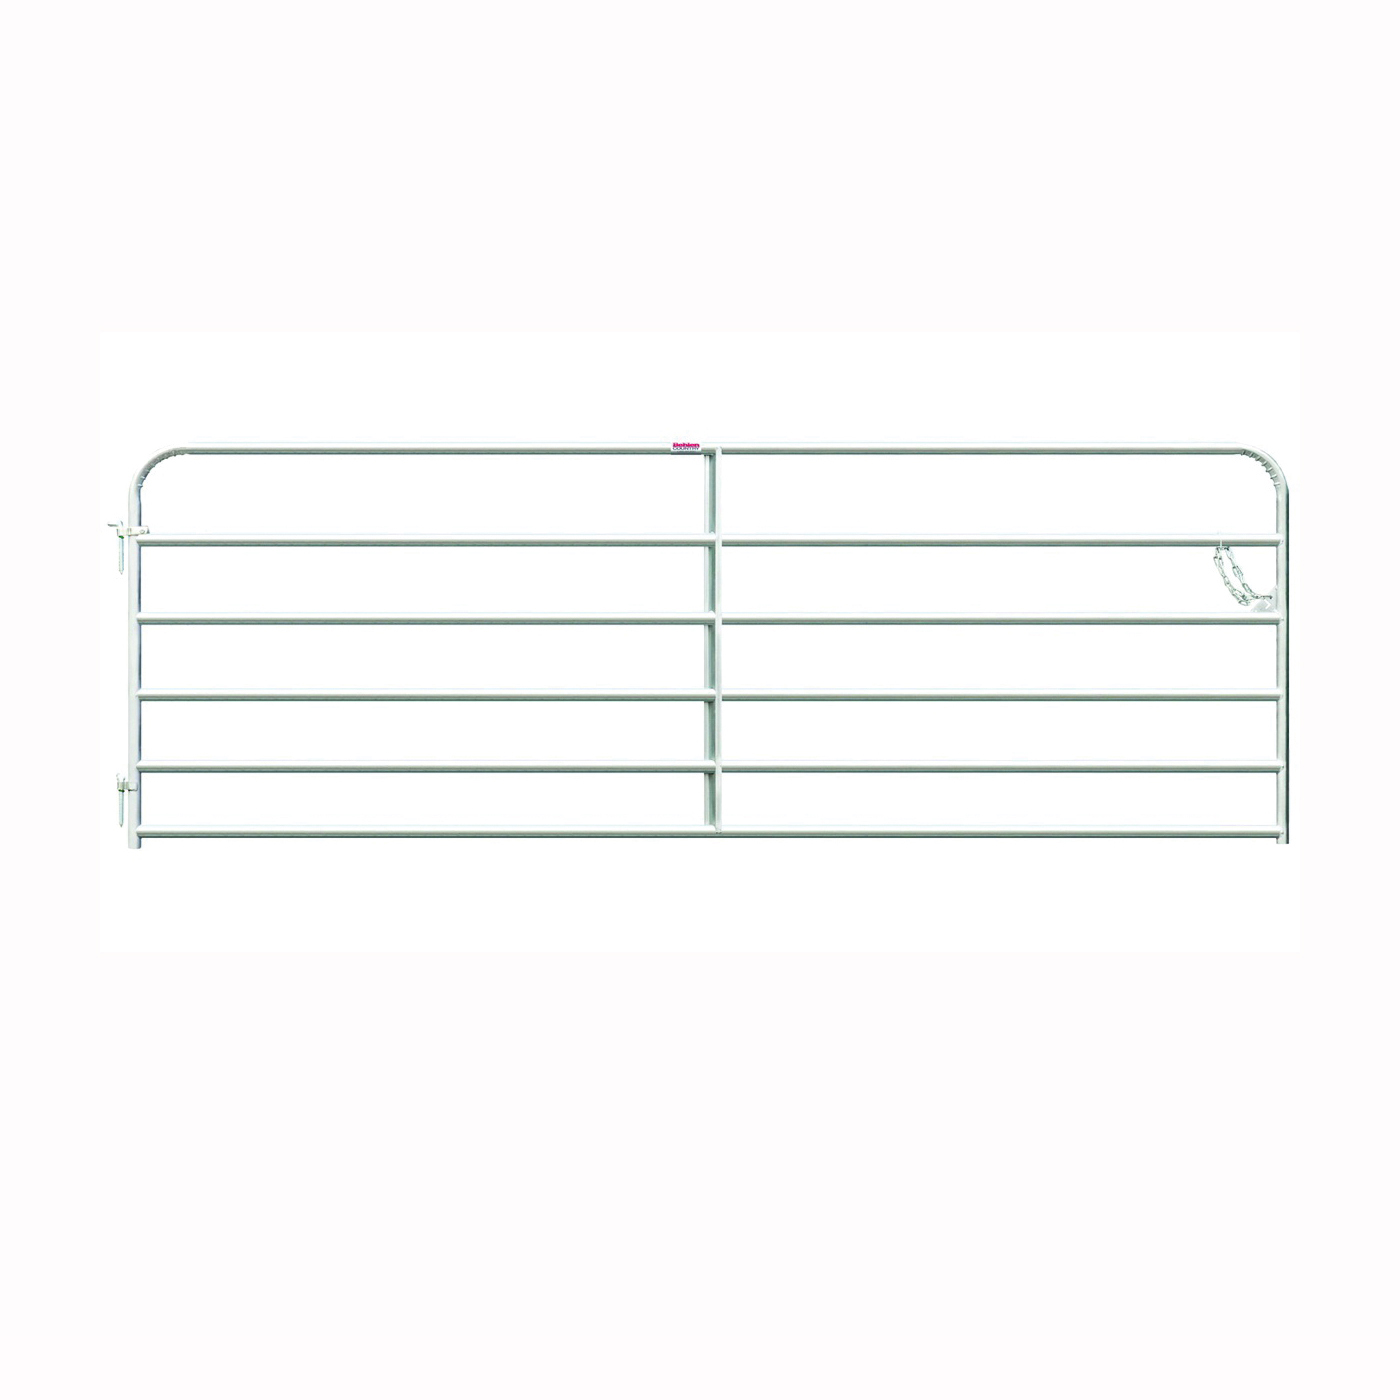 Picture of Behlen Country 40113108 Galvanized Gate, 120 in W Gate, 50 in H Gate, 20 ga Frame Tube/Channel, Steel Frame